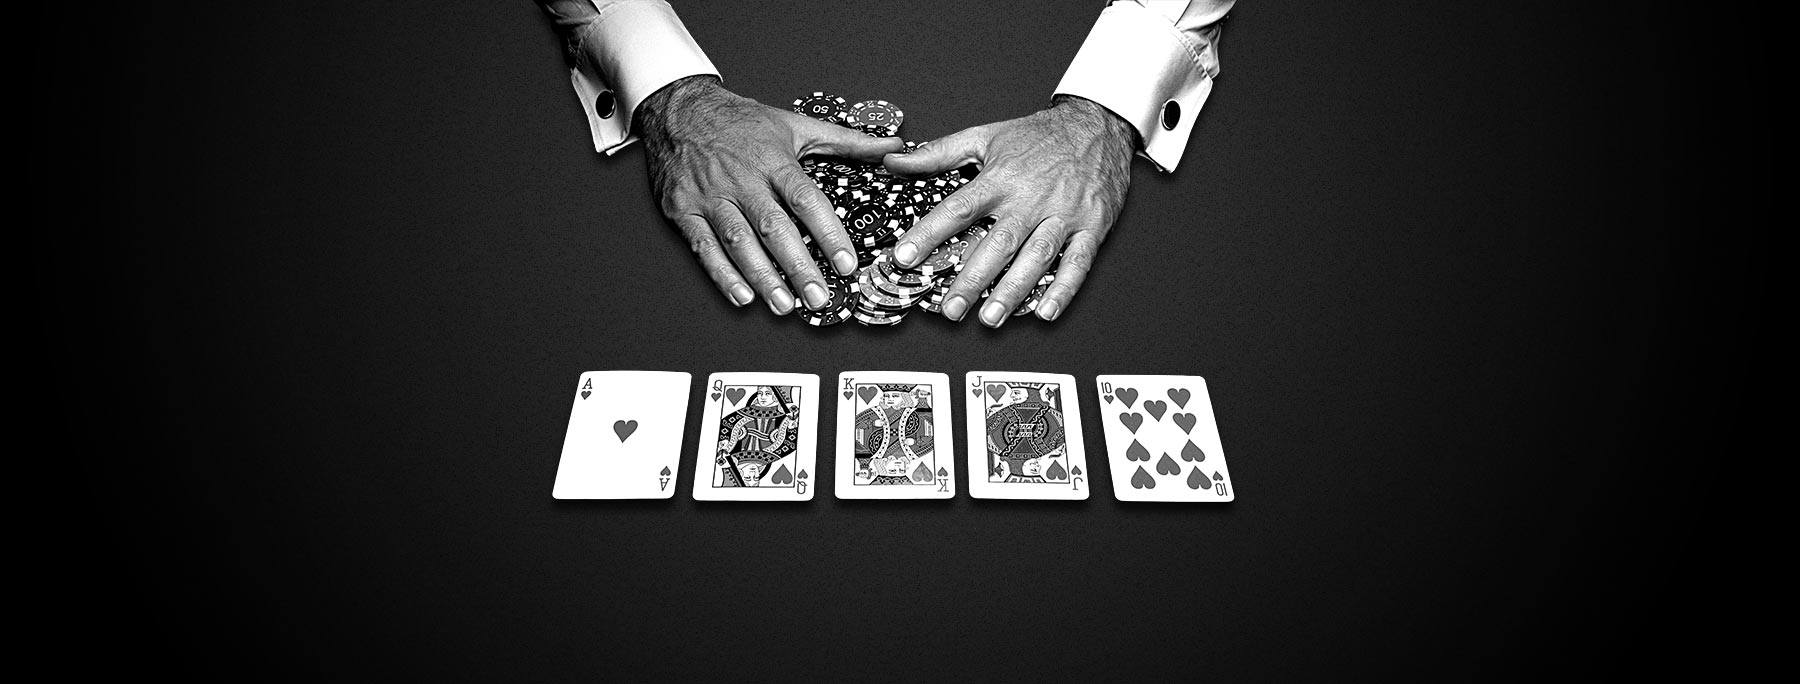 poker-blak-and-white